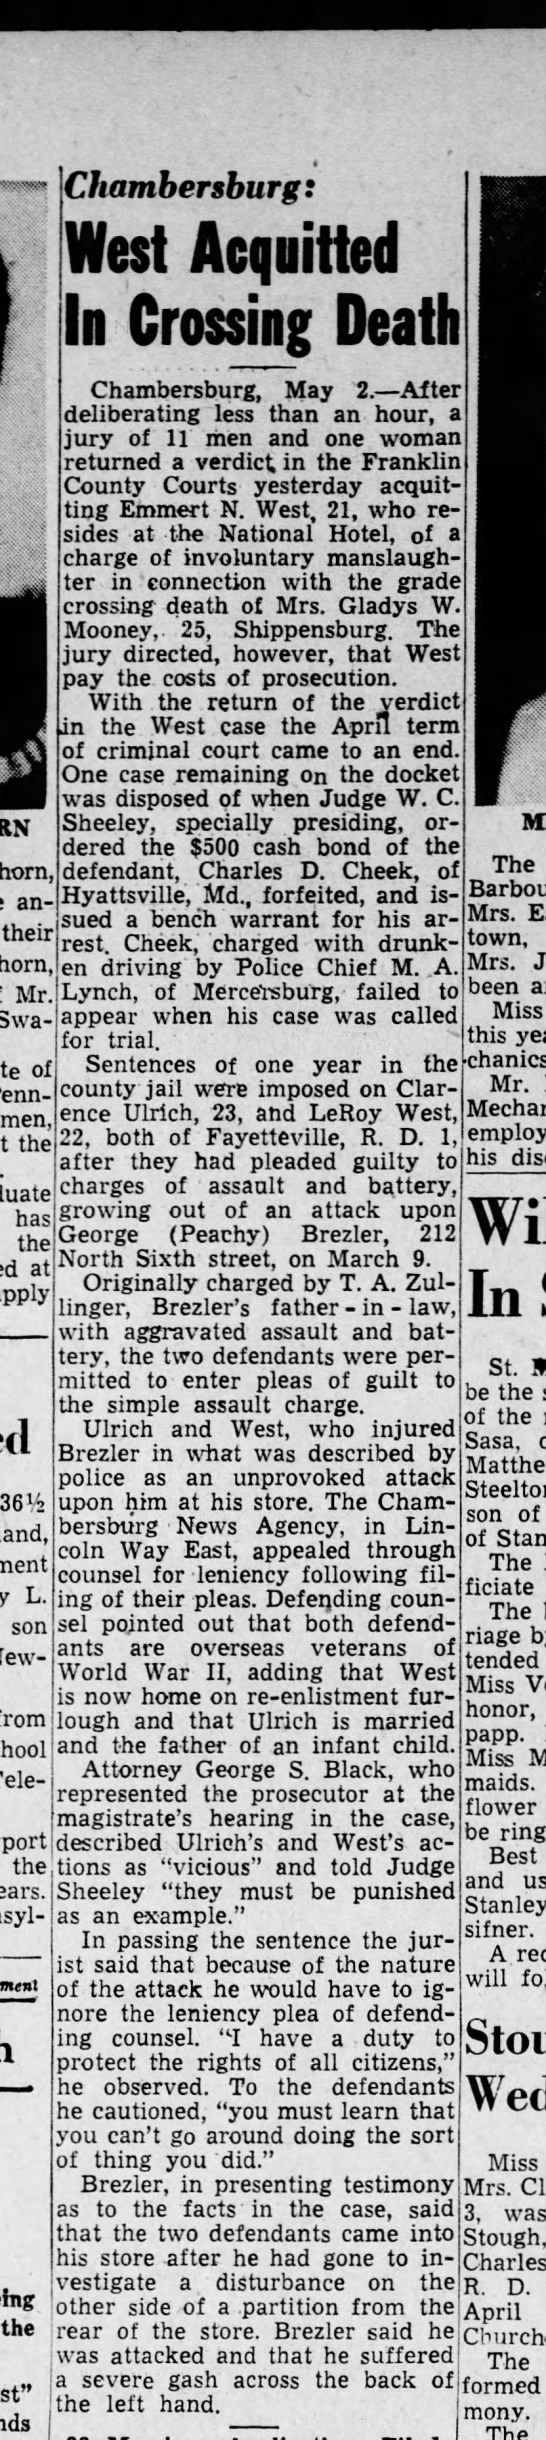 Harrisburg Telegraph (Harrisburg, PA) 2 May 1946 -